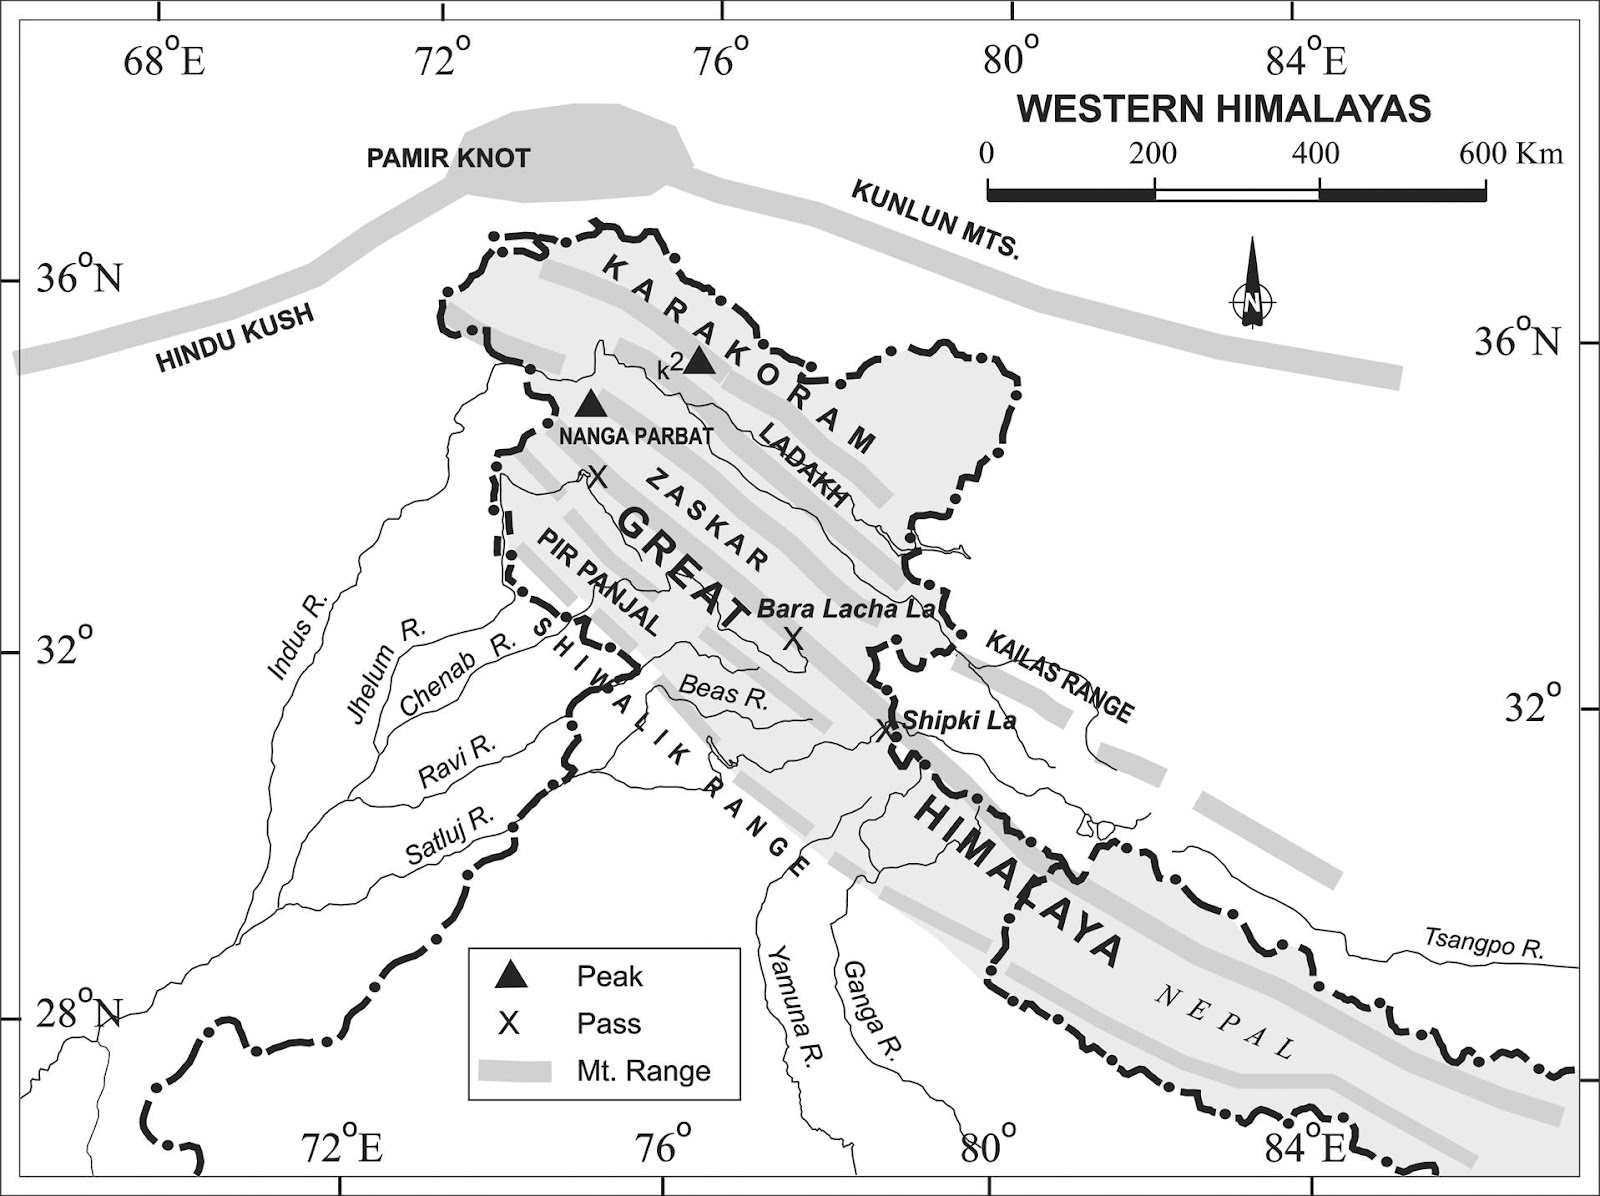 UPSC general studies and current affairs 2015: Western Himalayas